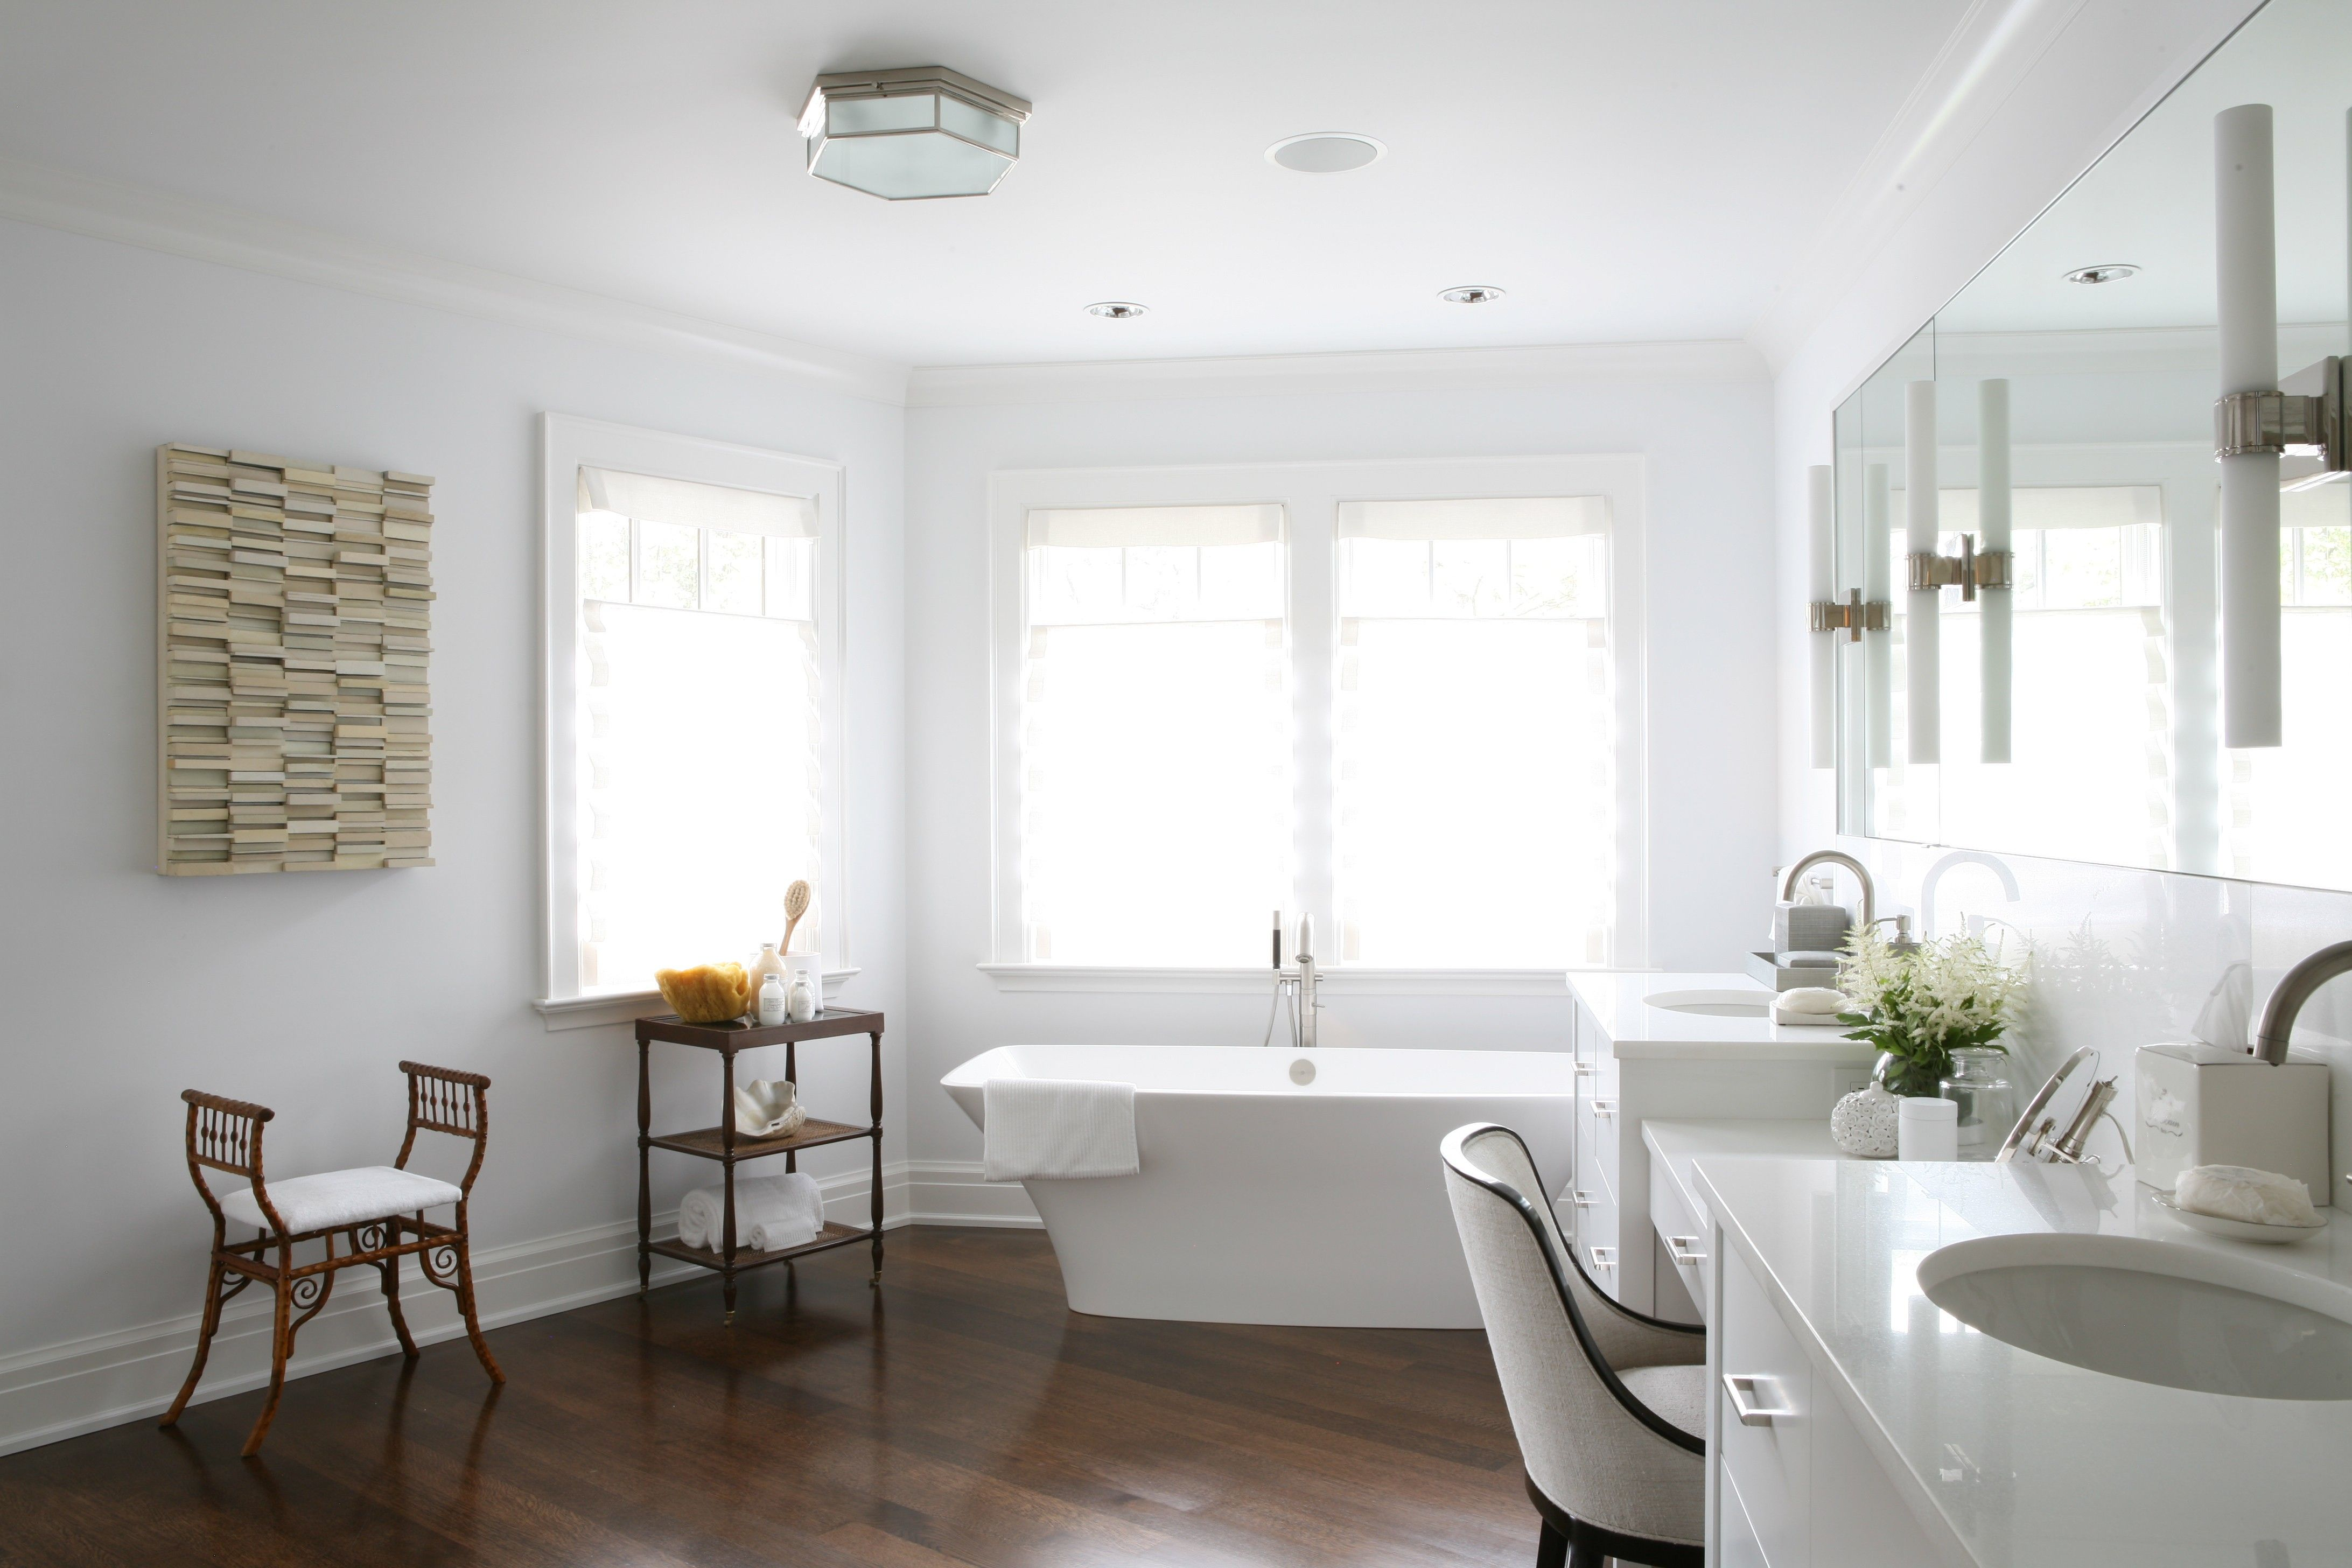 8 Ways to Turn Your Bathroom Into A Personal Spa | Round rock, Spa ...